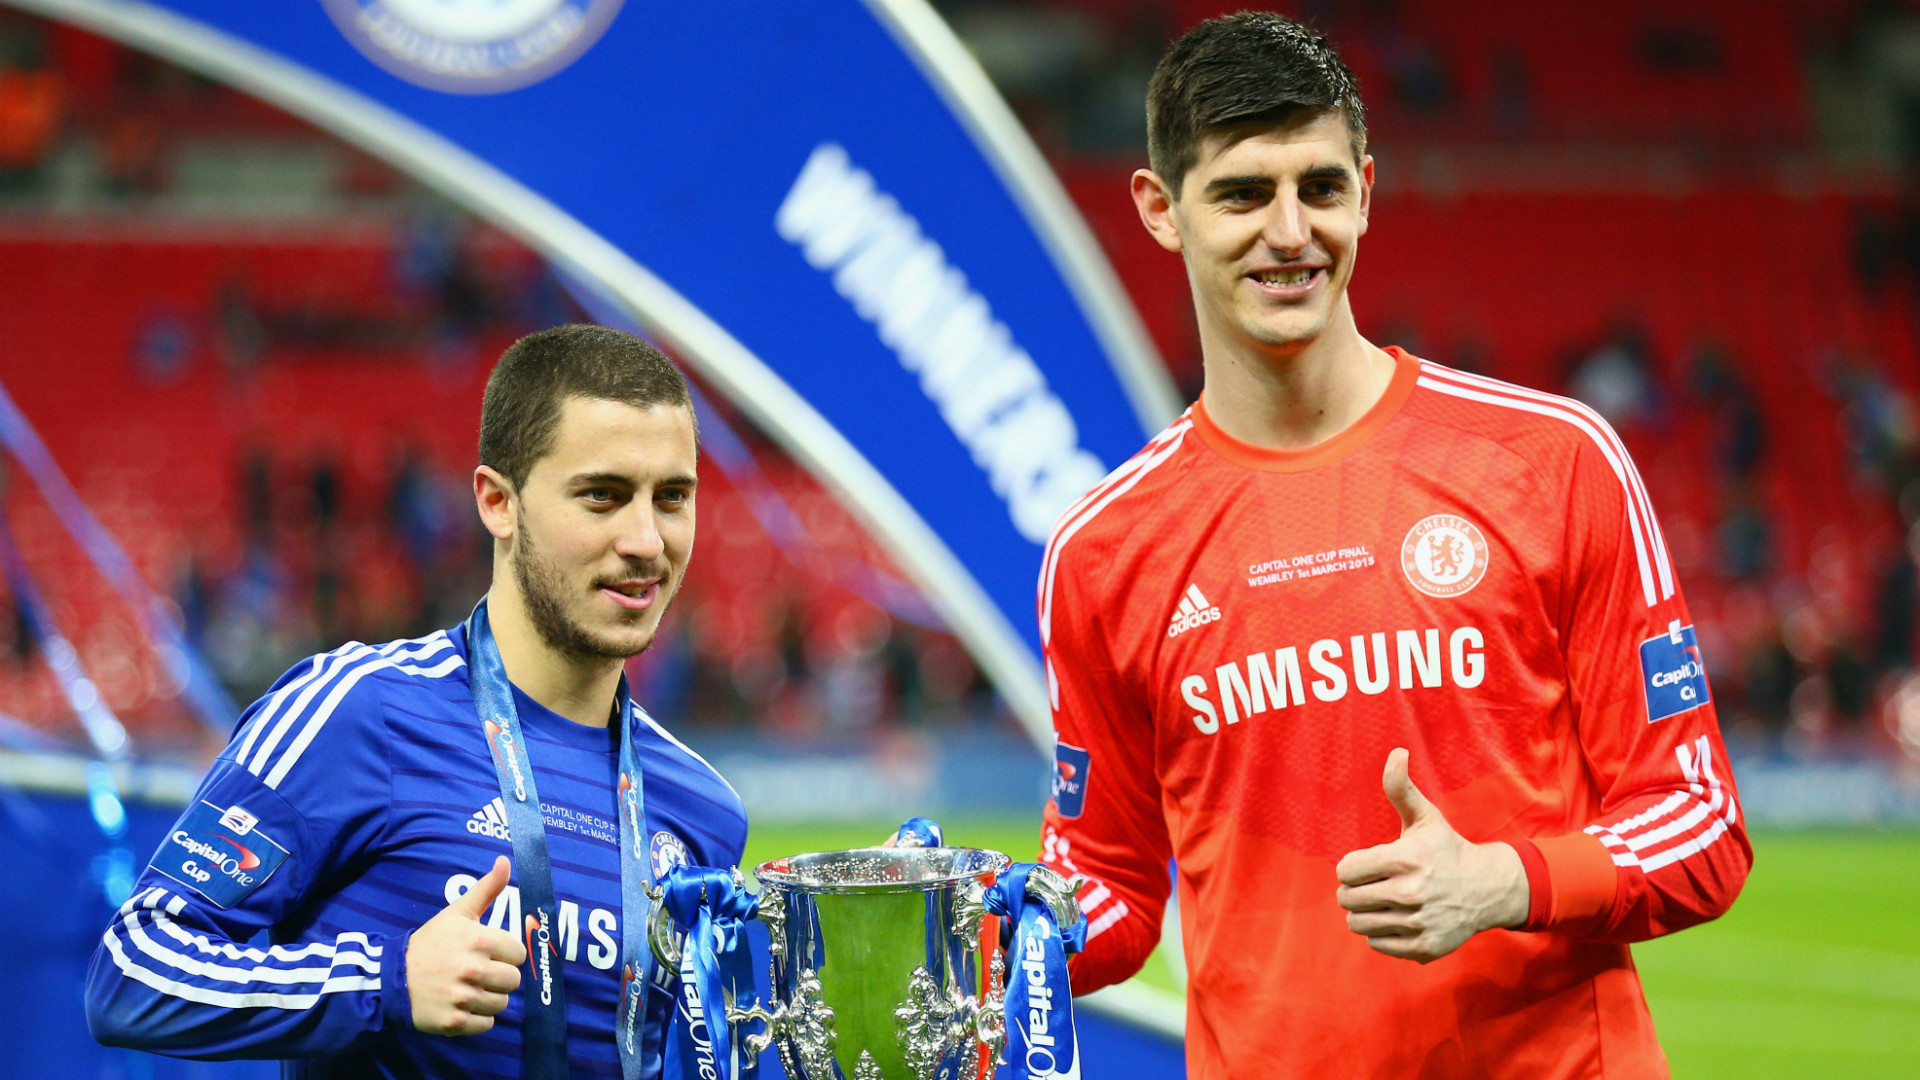 Courtois says he and Hazard talked about Real Madrid move in the Chelsea dressing room